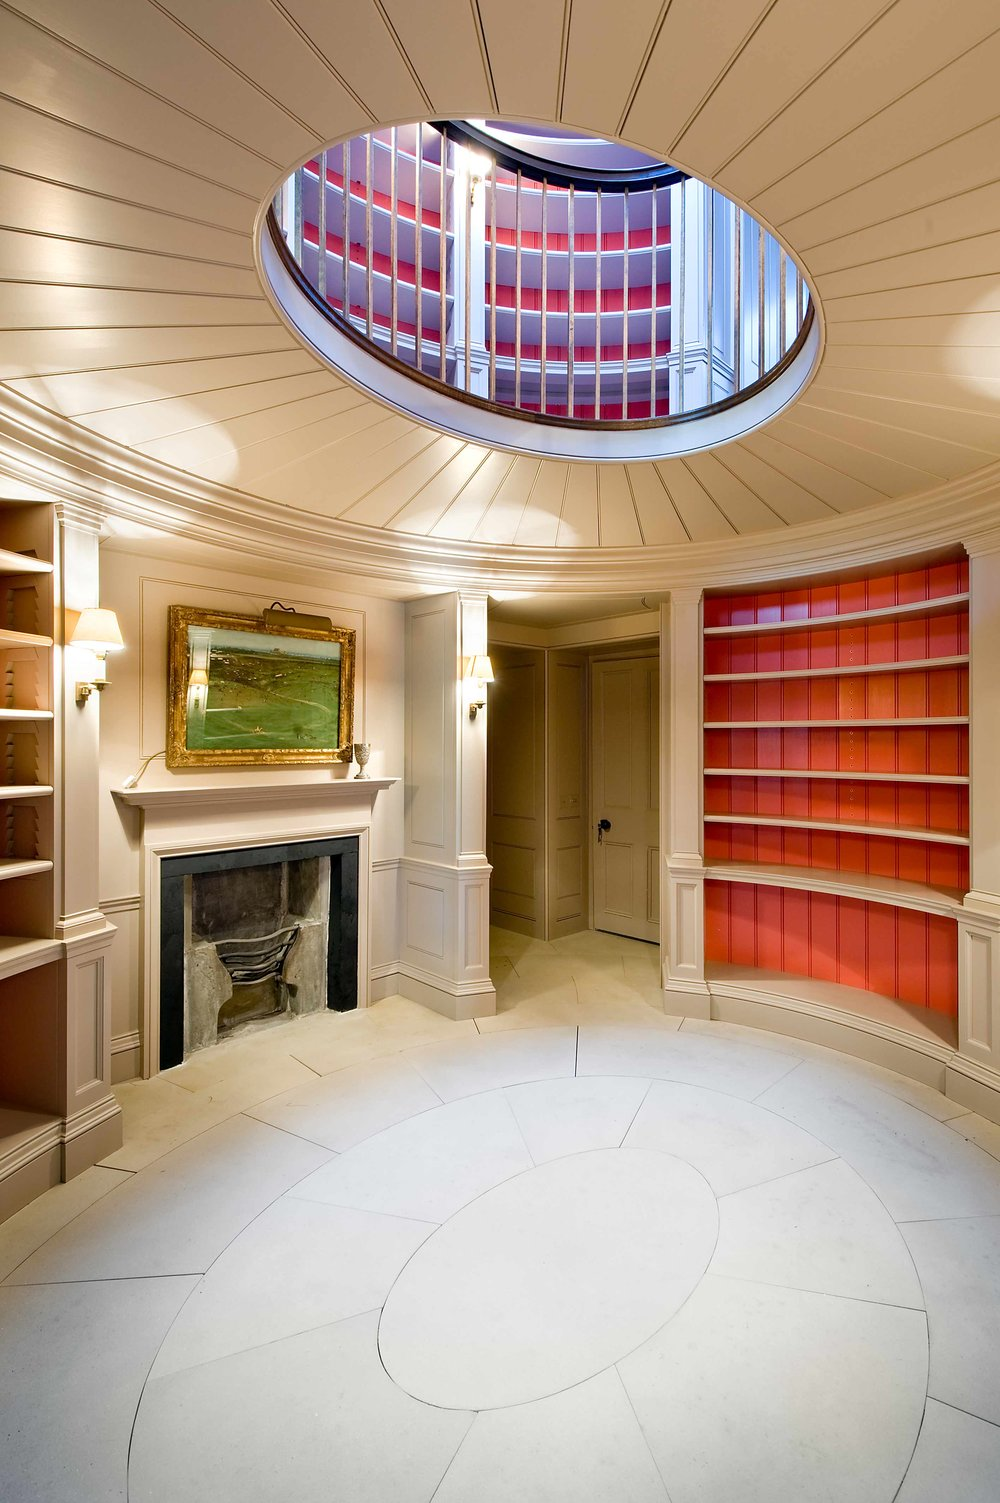 Elliptical fitted bookcase scheme spanning two floors, Edinburgh.